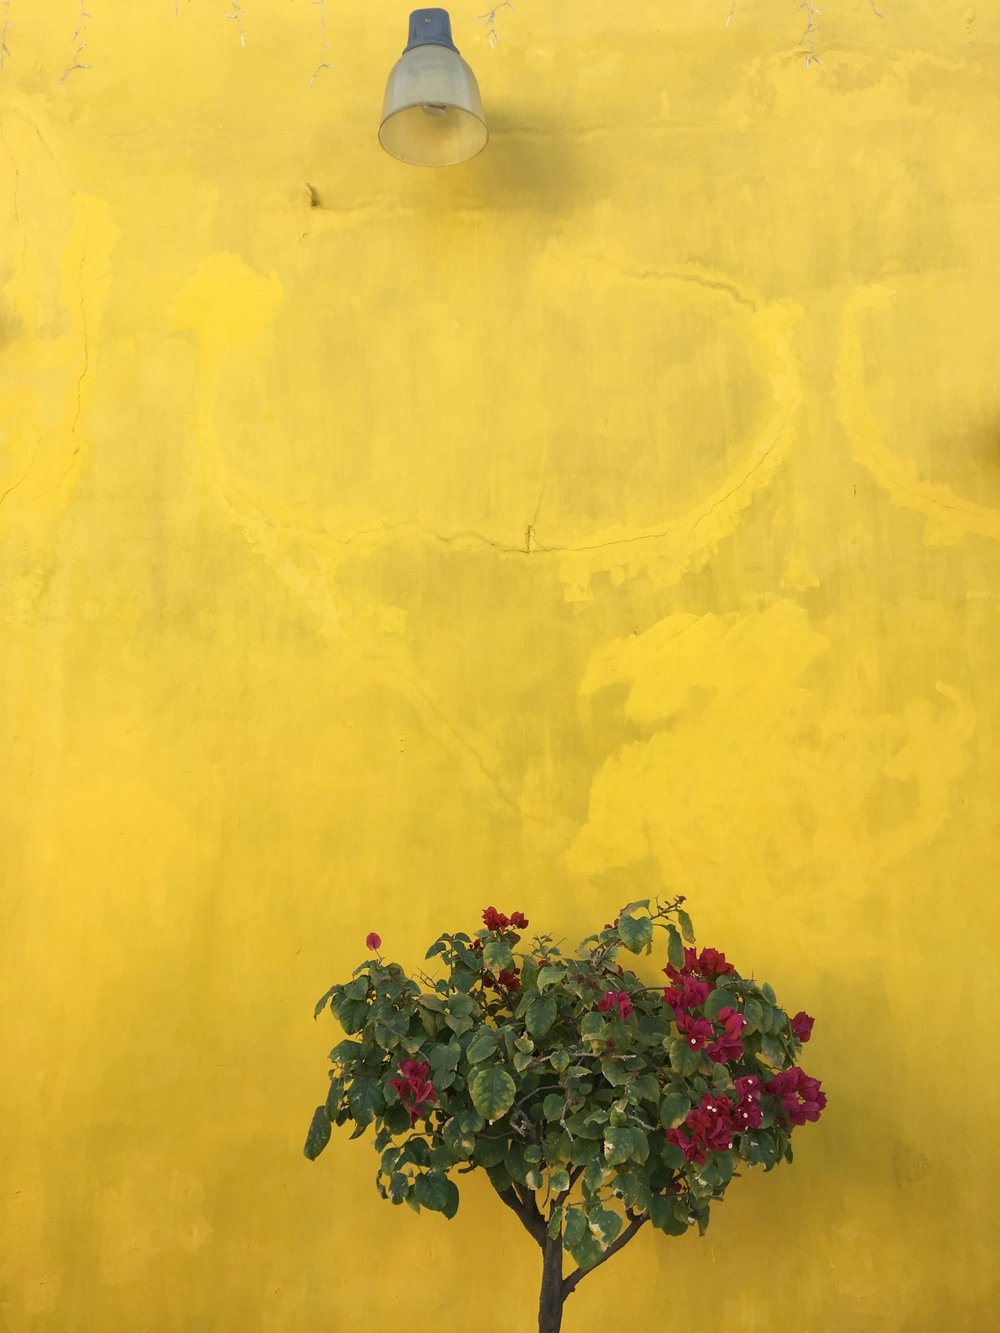 oaxaca city yellow wall